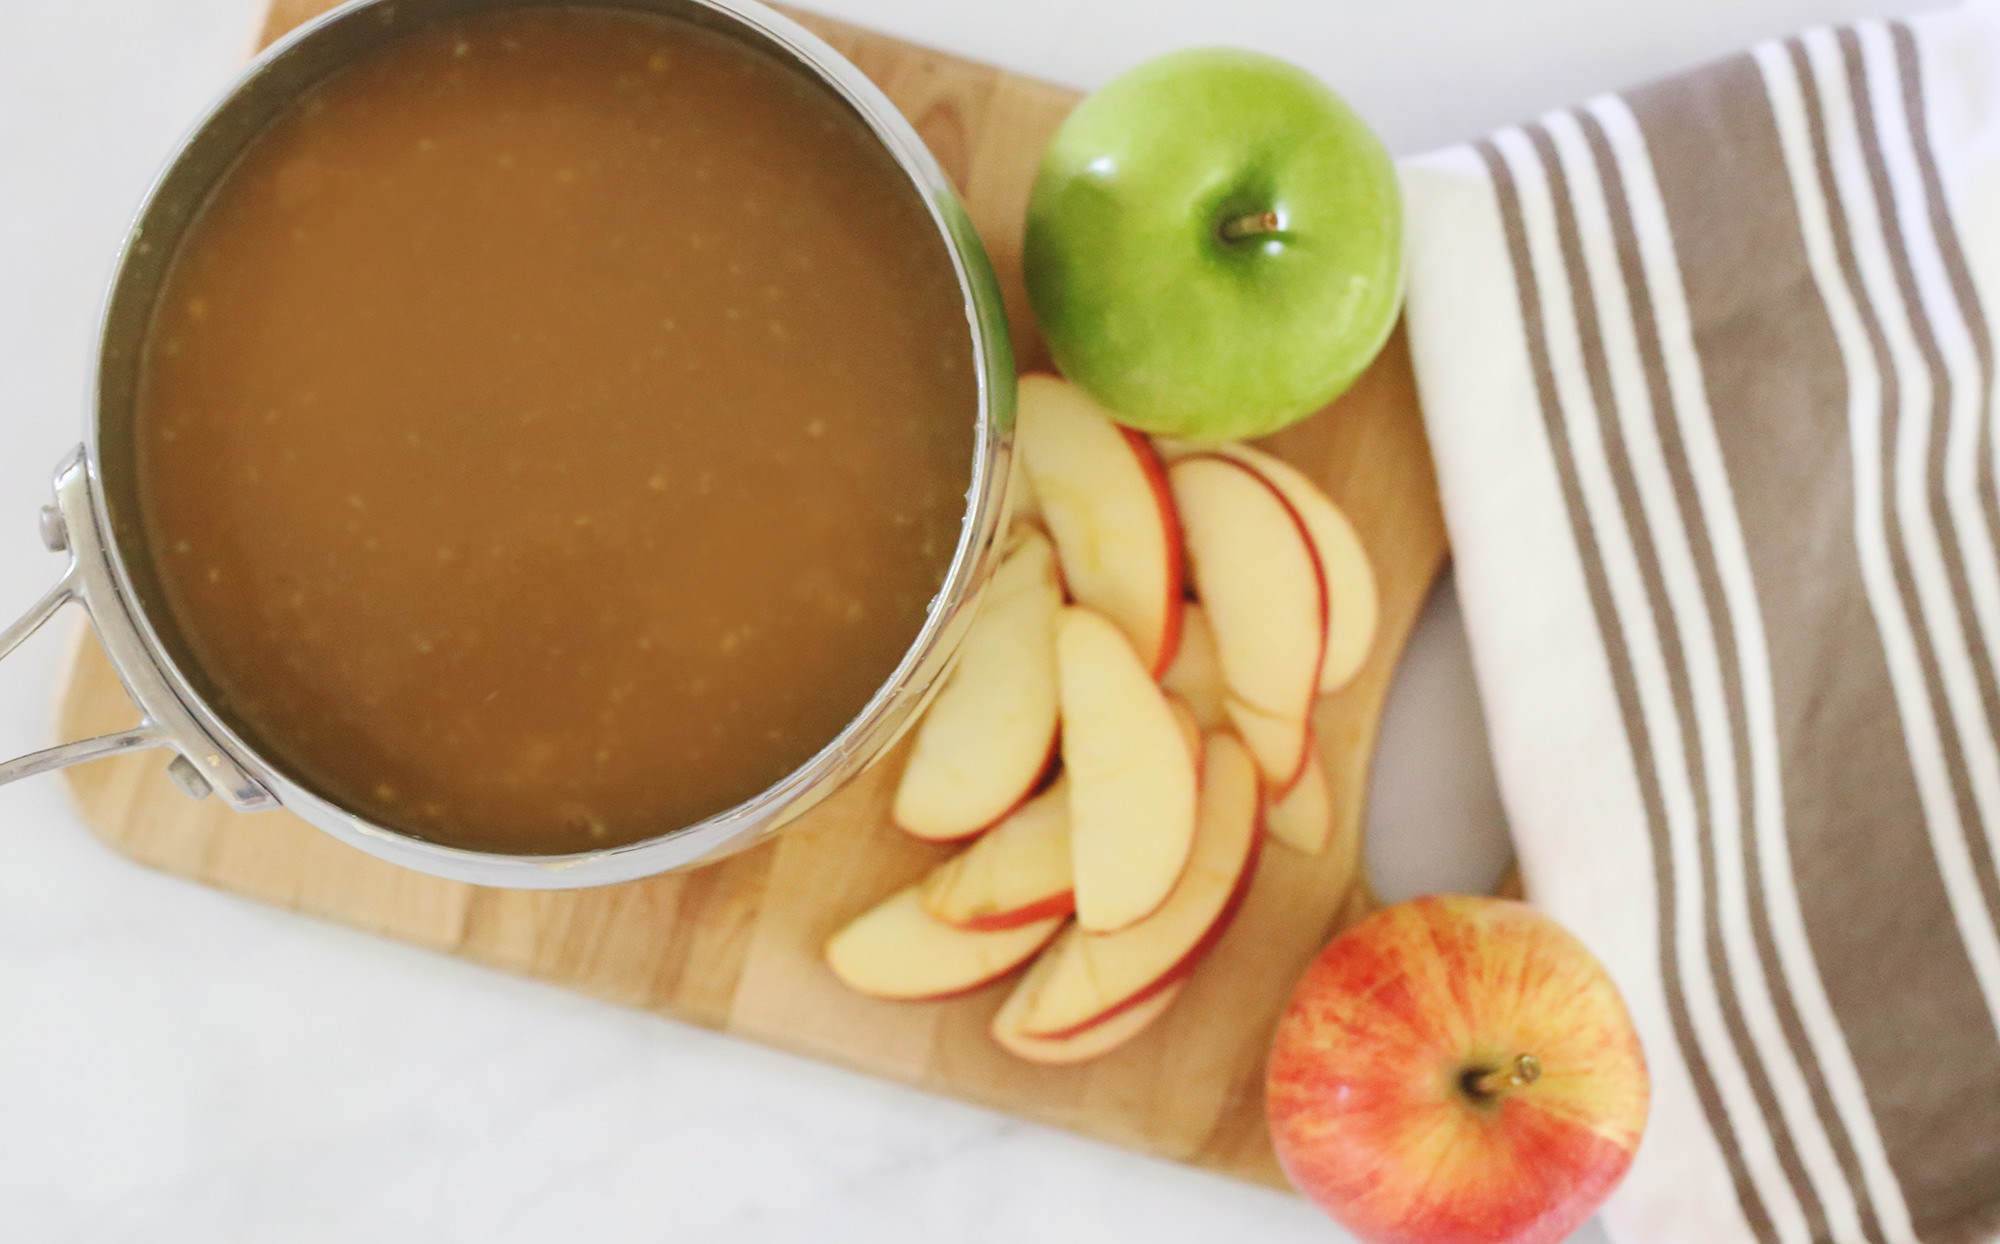 Perfect Caramel dip for apples! Lily & Val Living